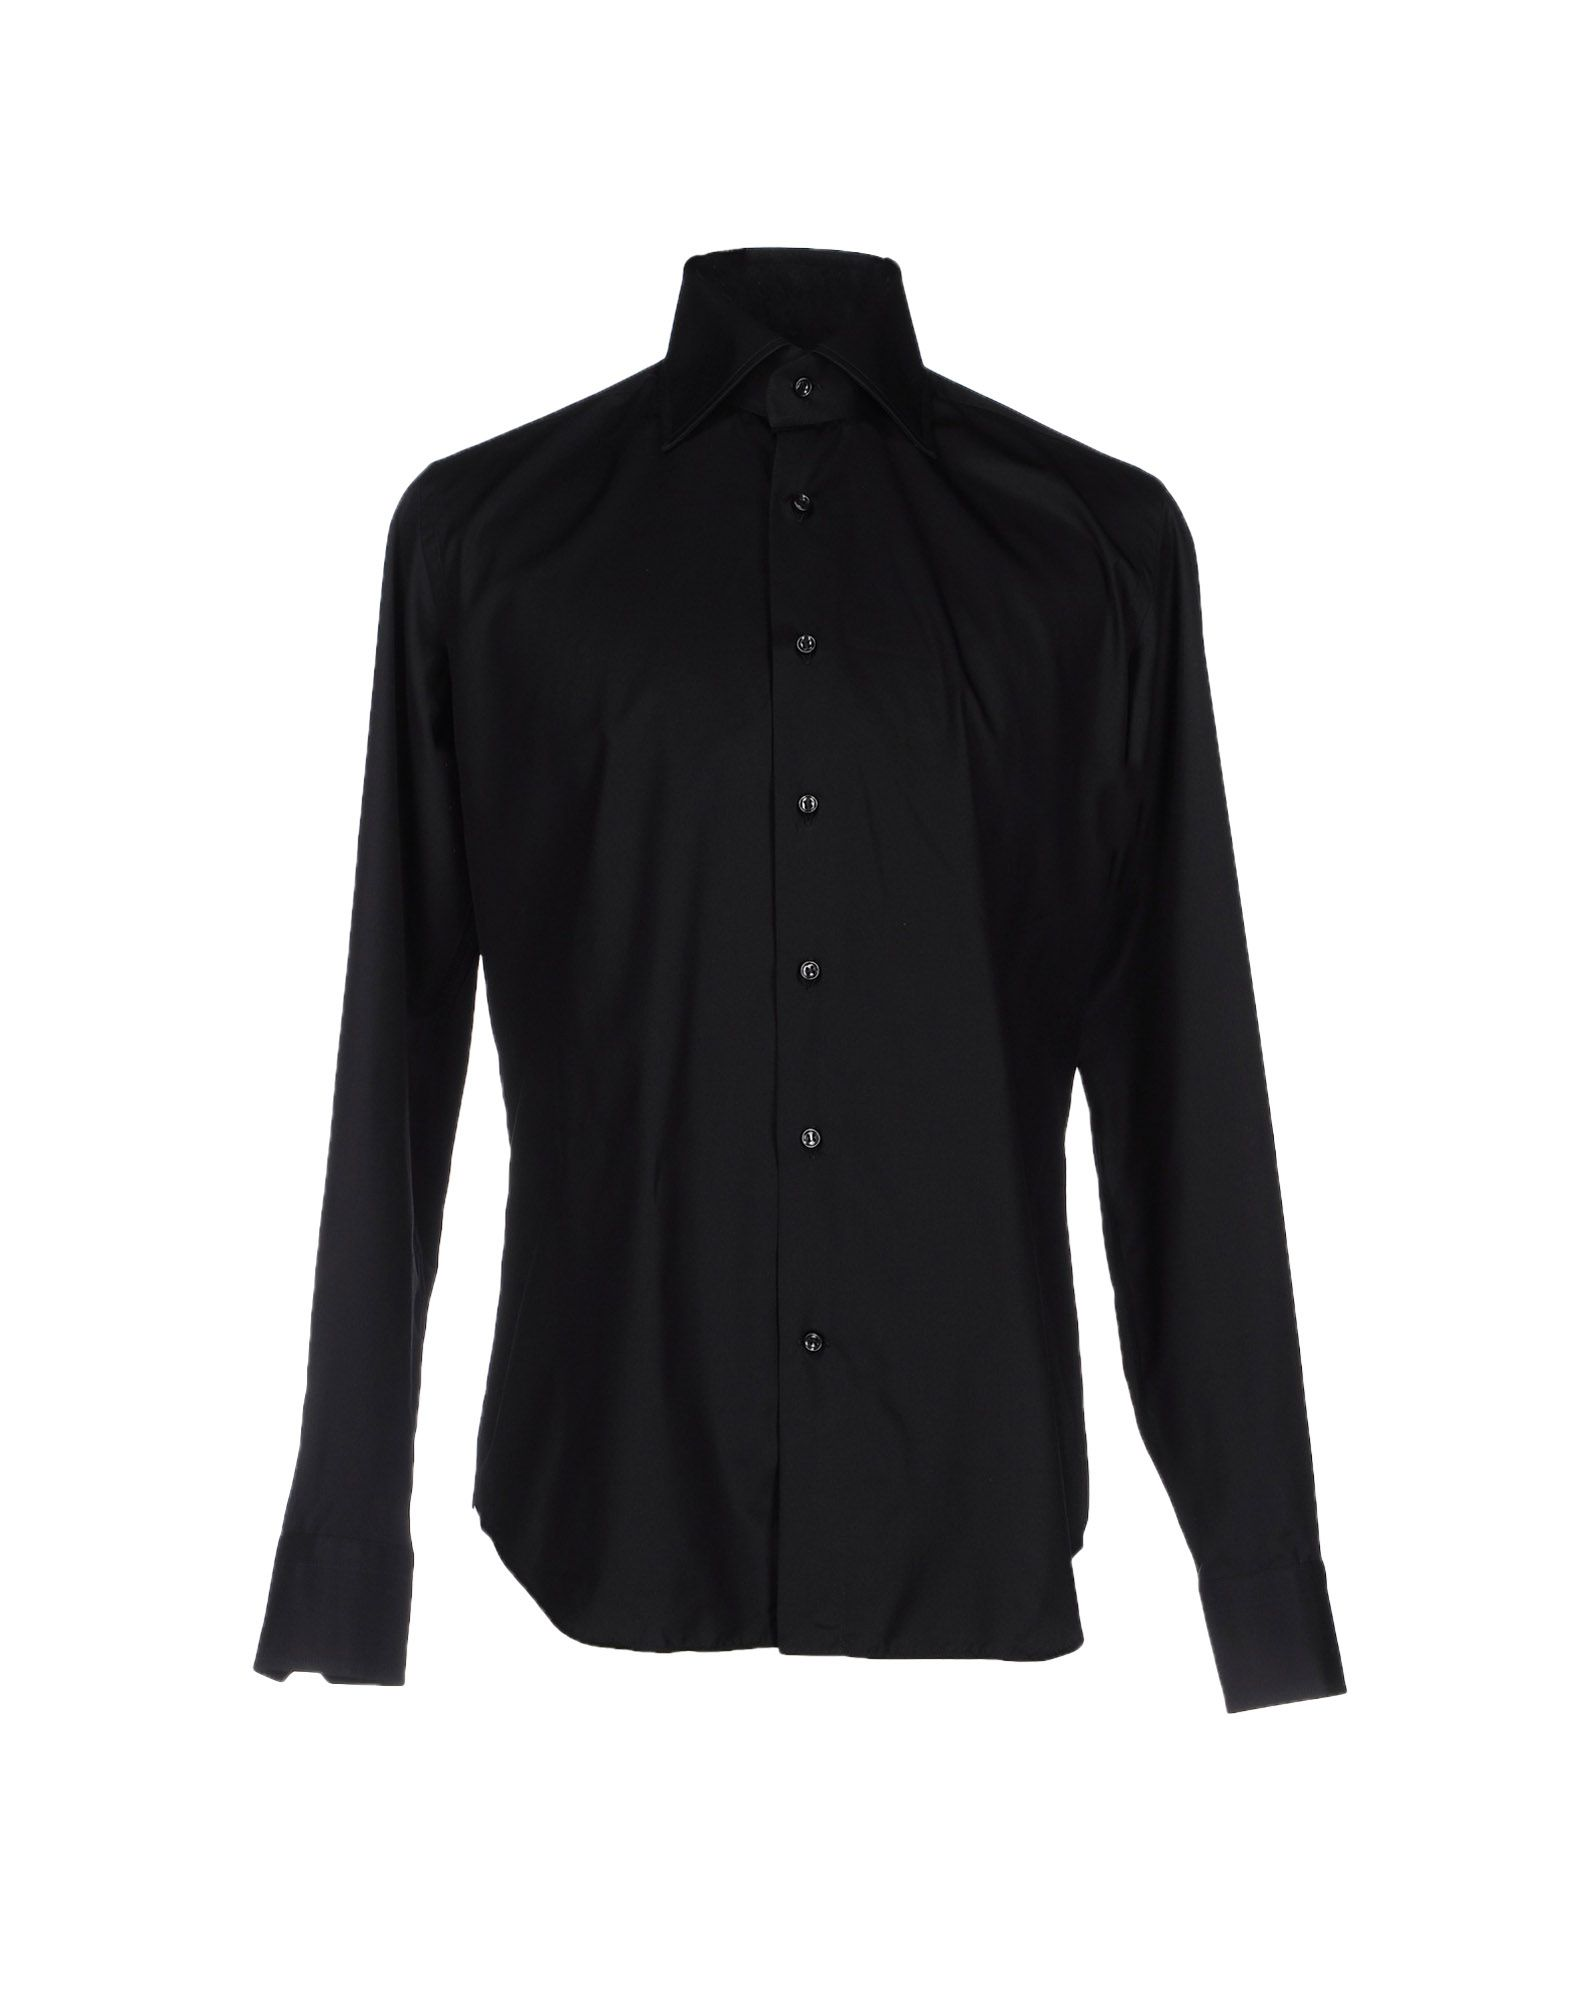 LEXINGTON Solid Color Shirt in Black